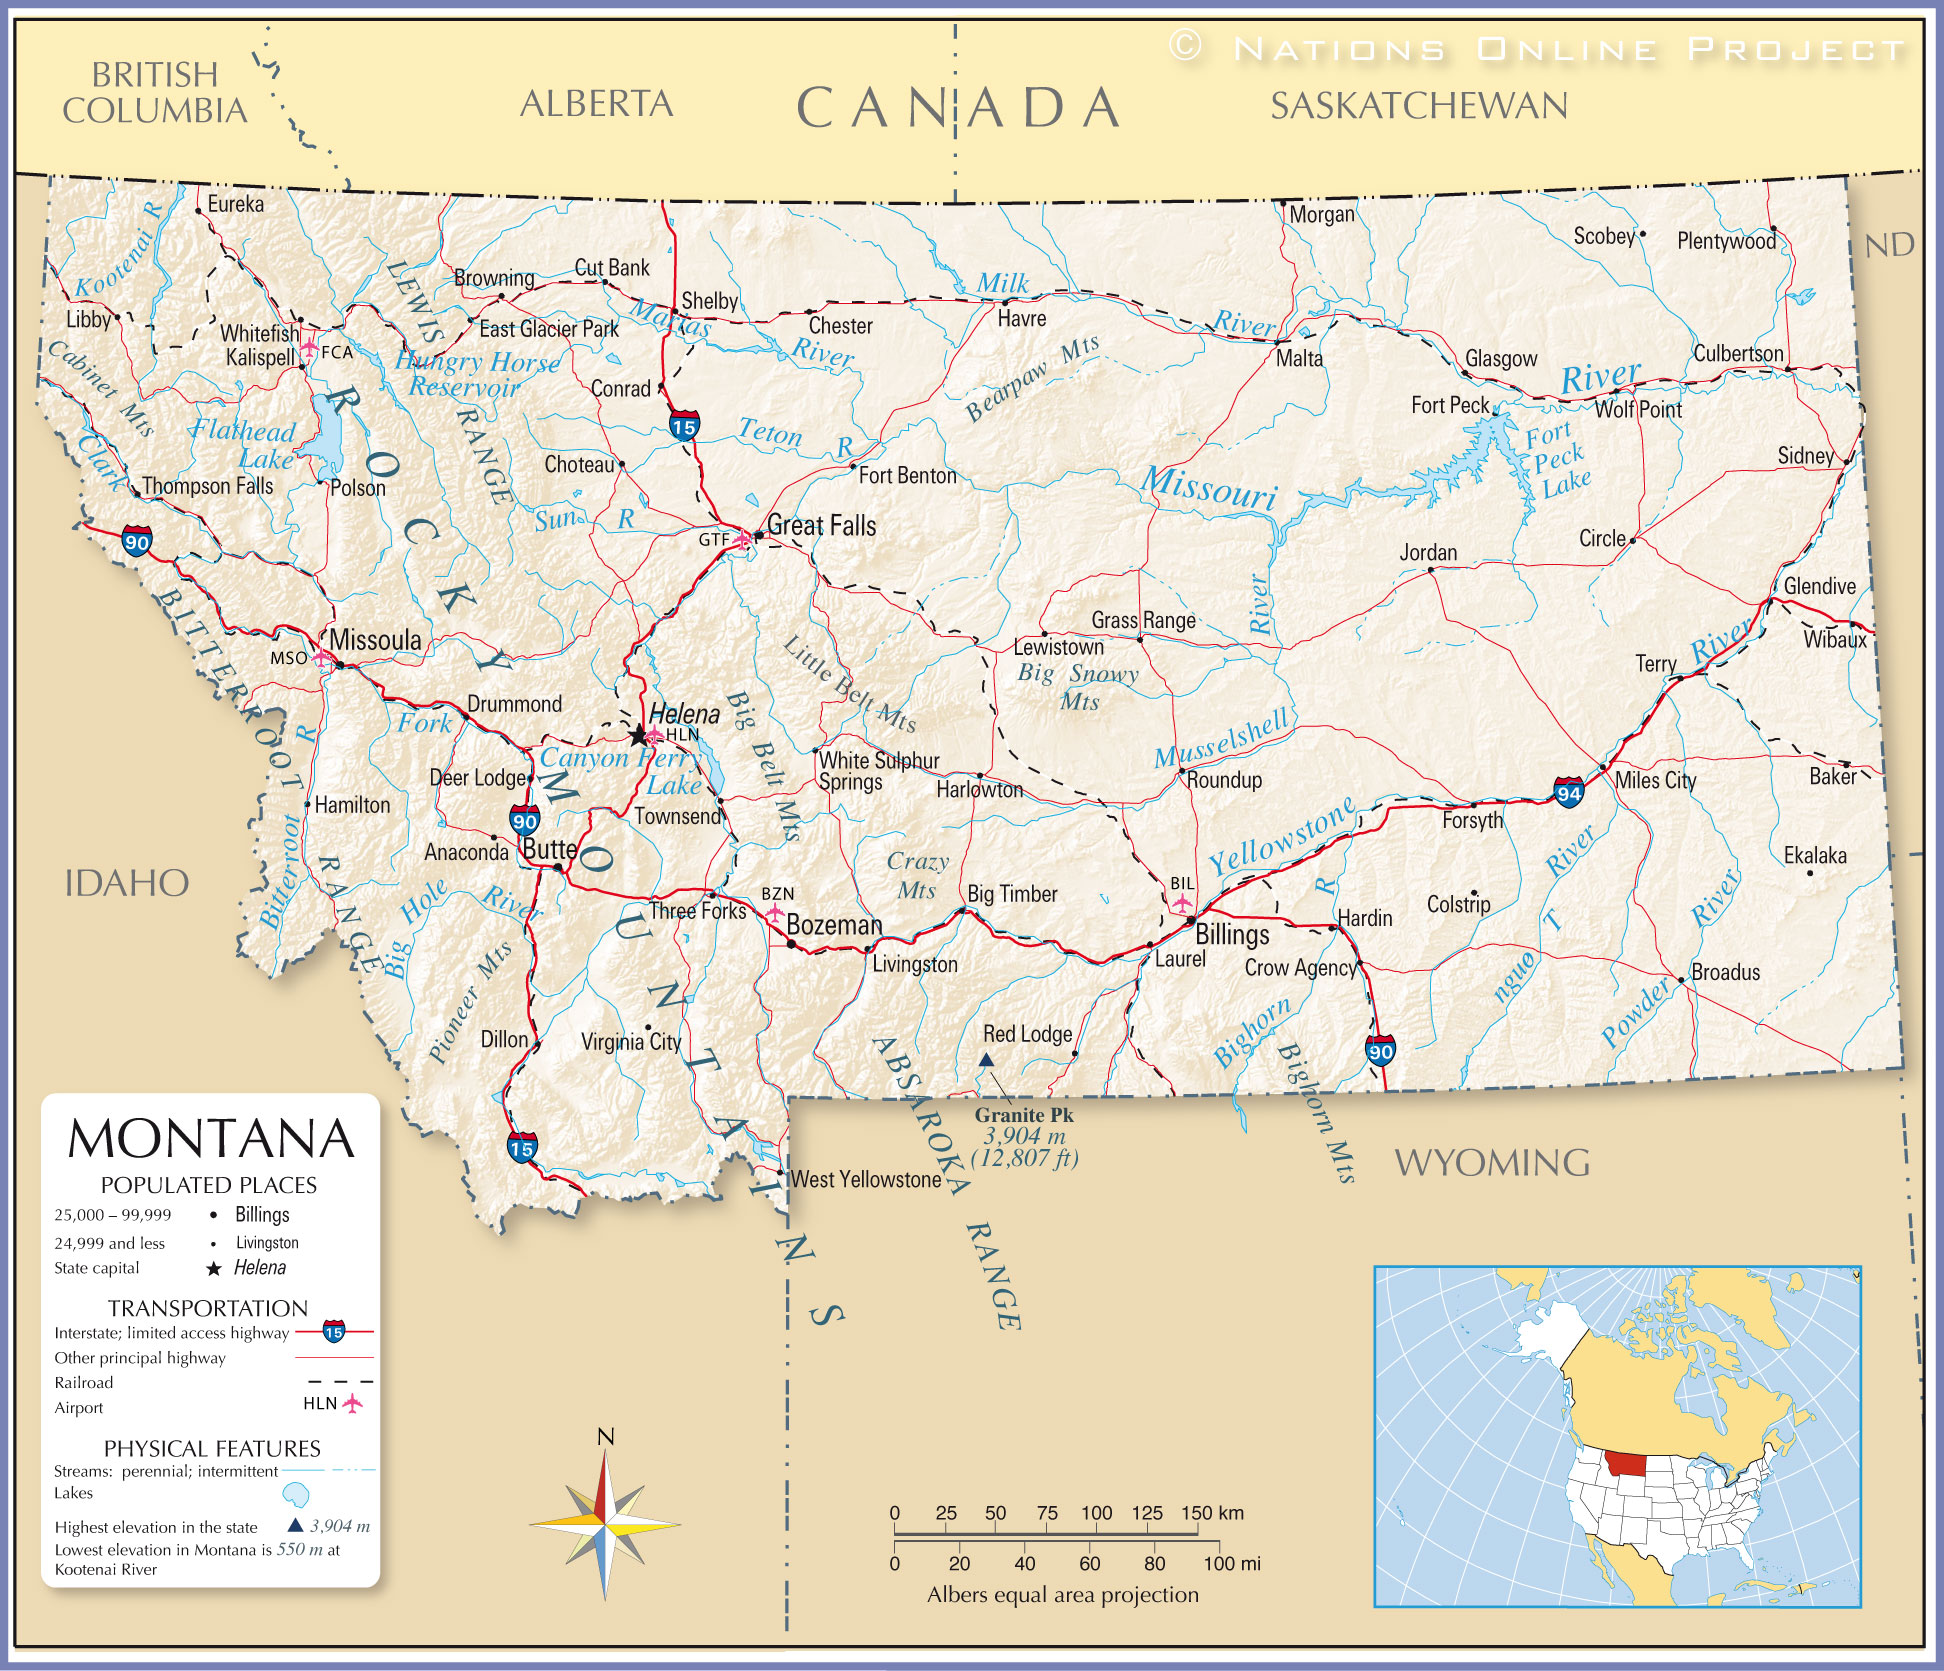 Reference Map Of Montana Usa Nations Online Project Us Map Montana